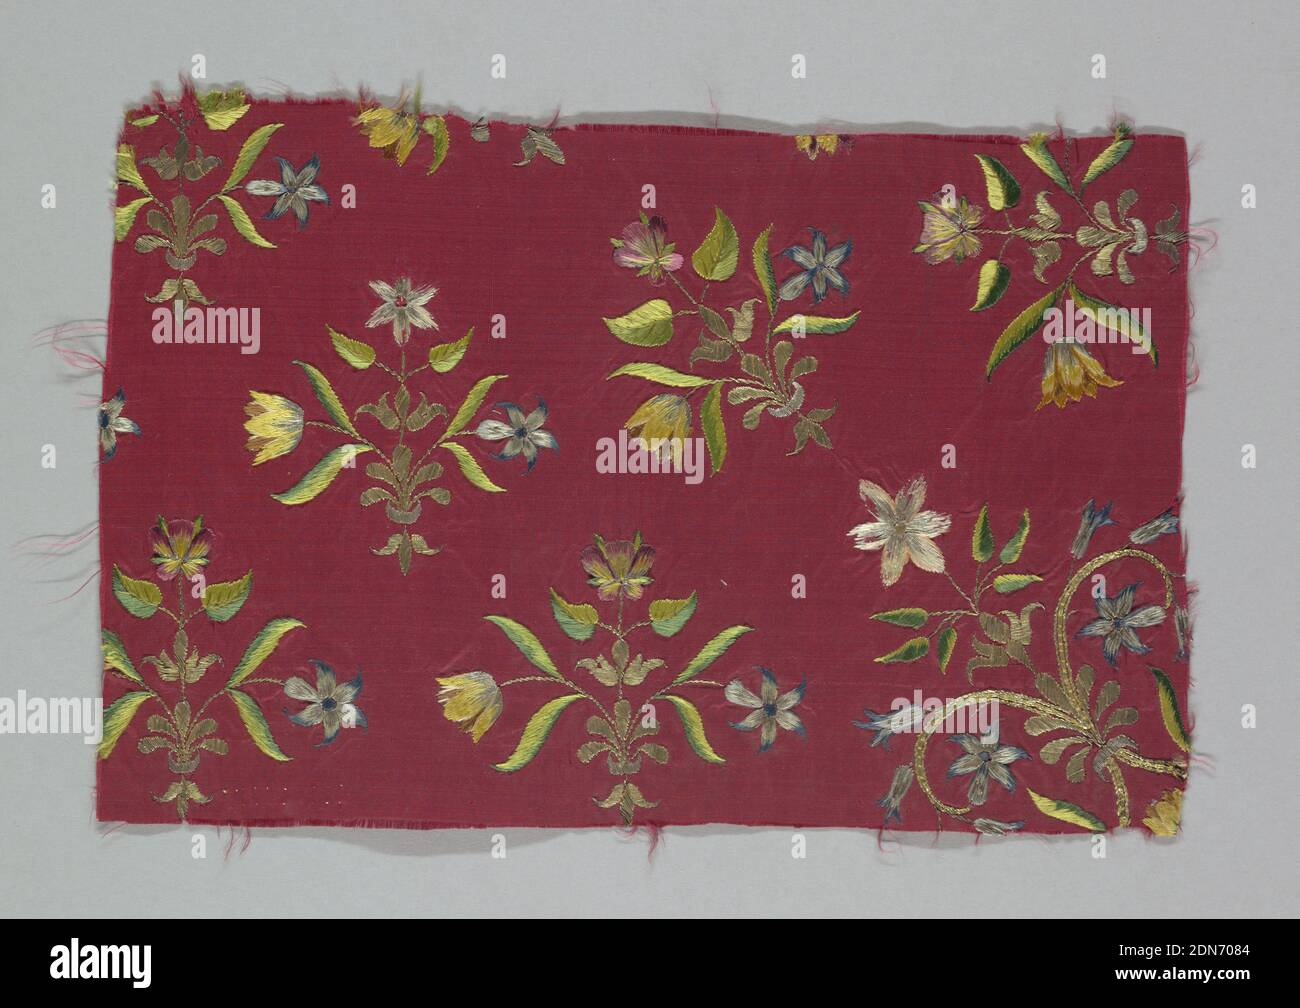 Stem Stitch Embroidery High Resolution Stock Photography And Images Alamy